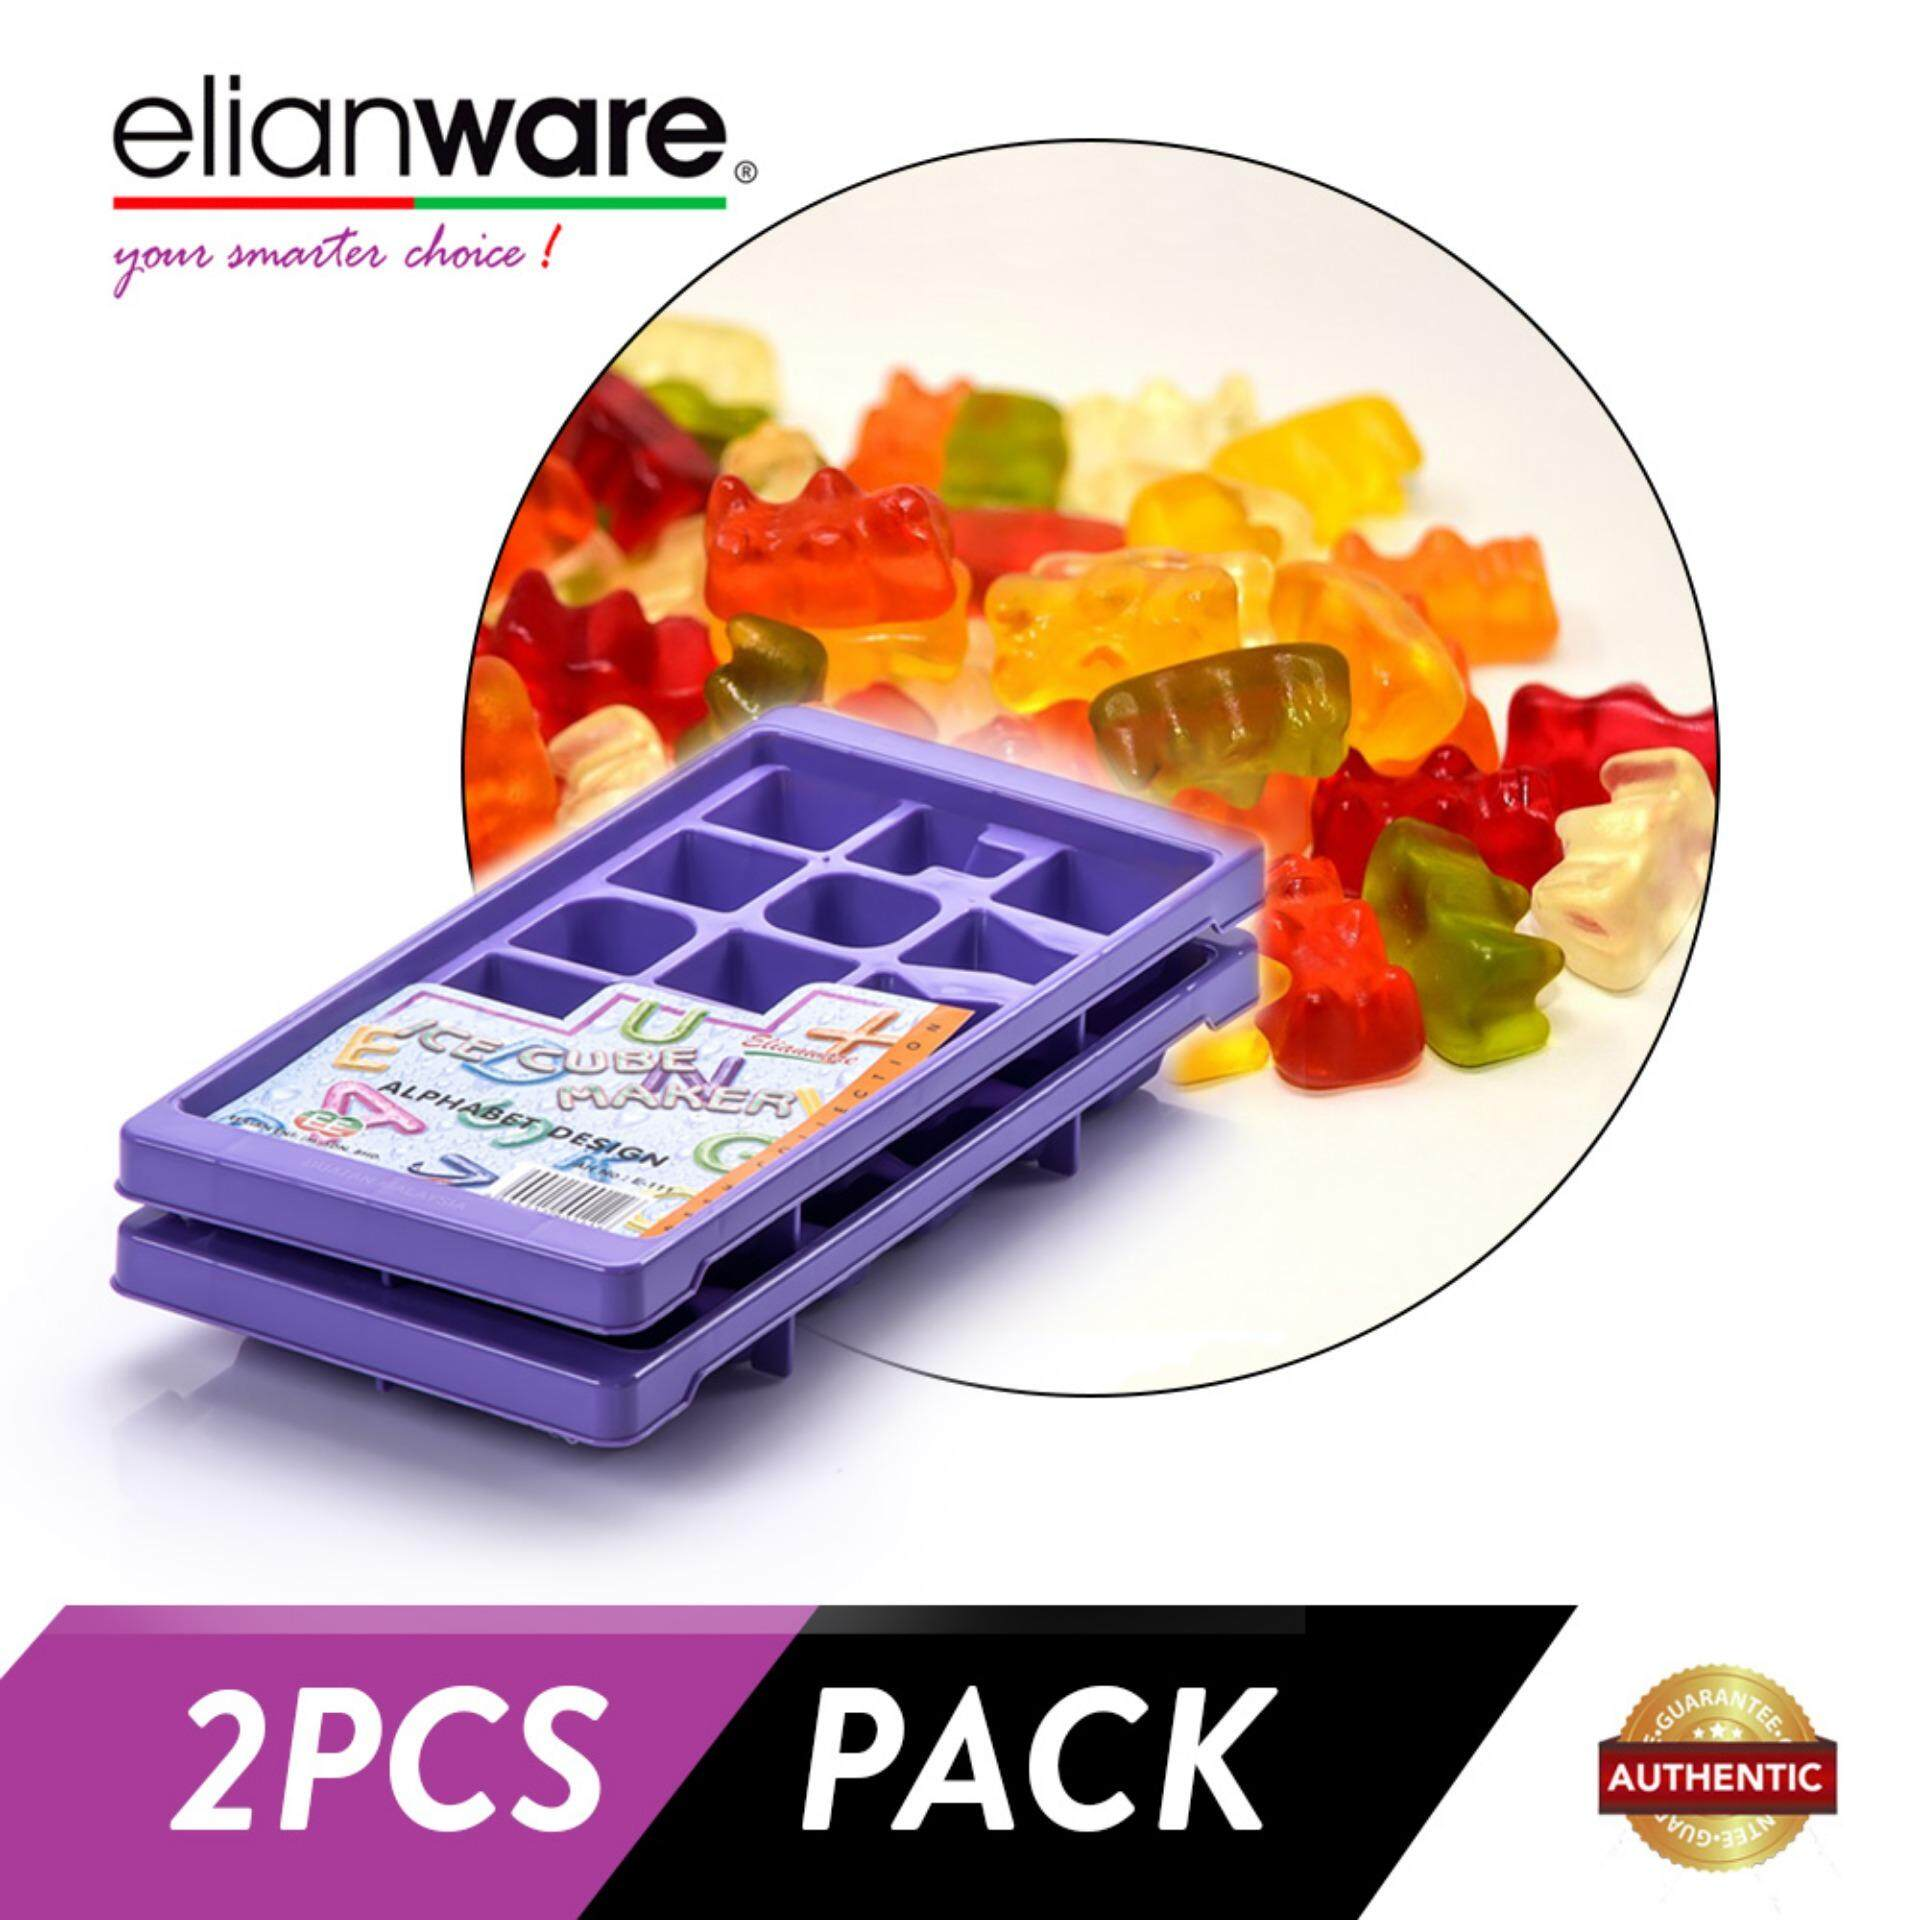 Elianware 2 Pcs ABC Stackable Ice Cube and Jelly Mould BPA Free